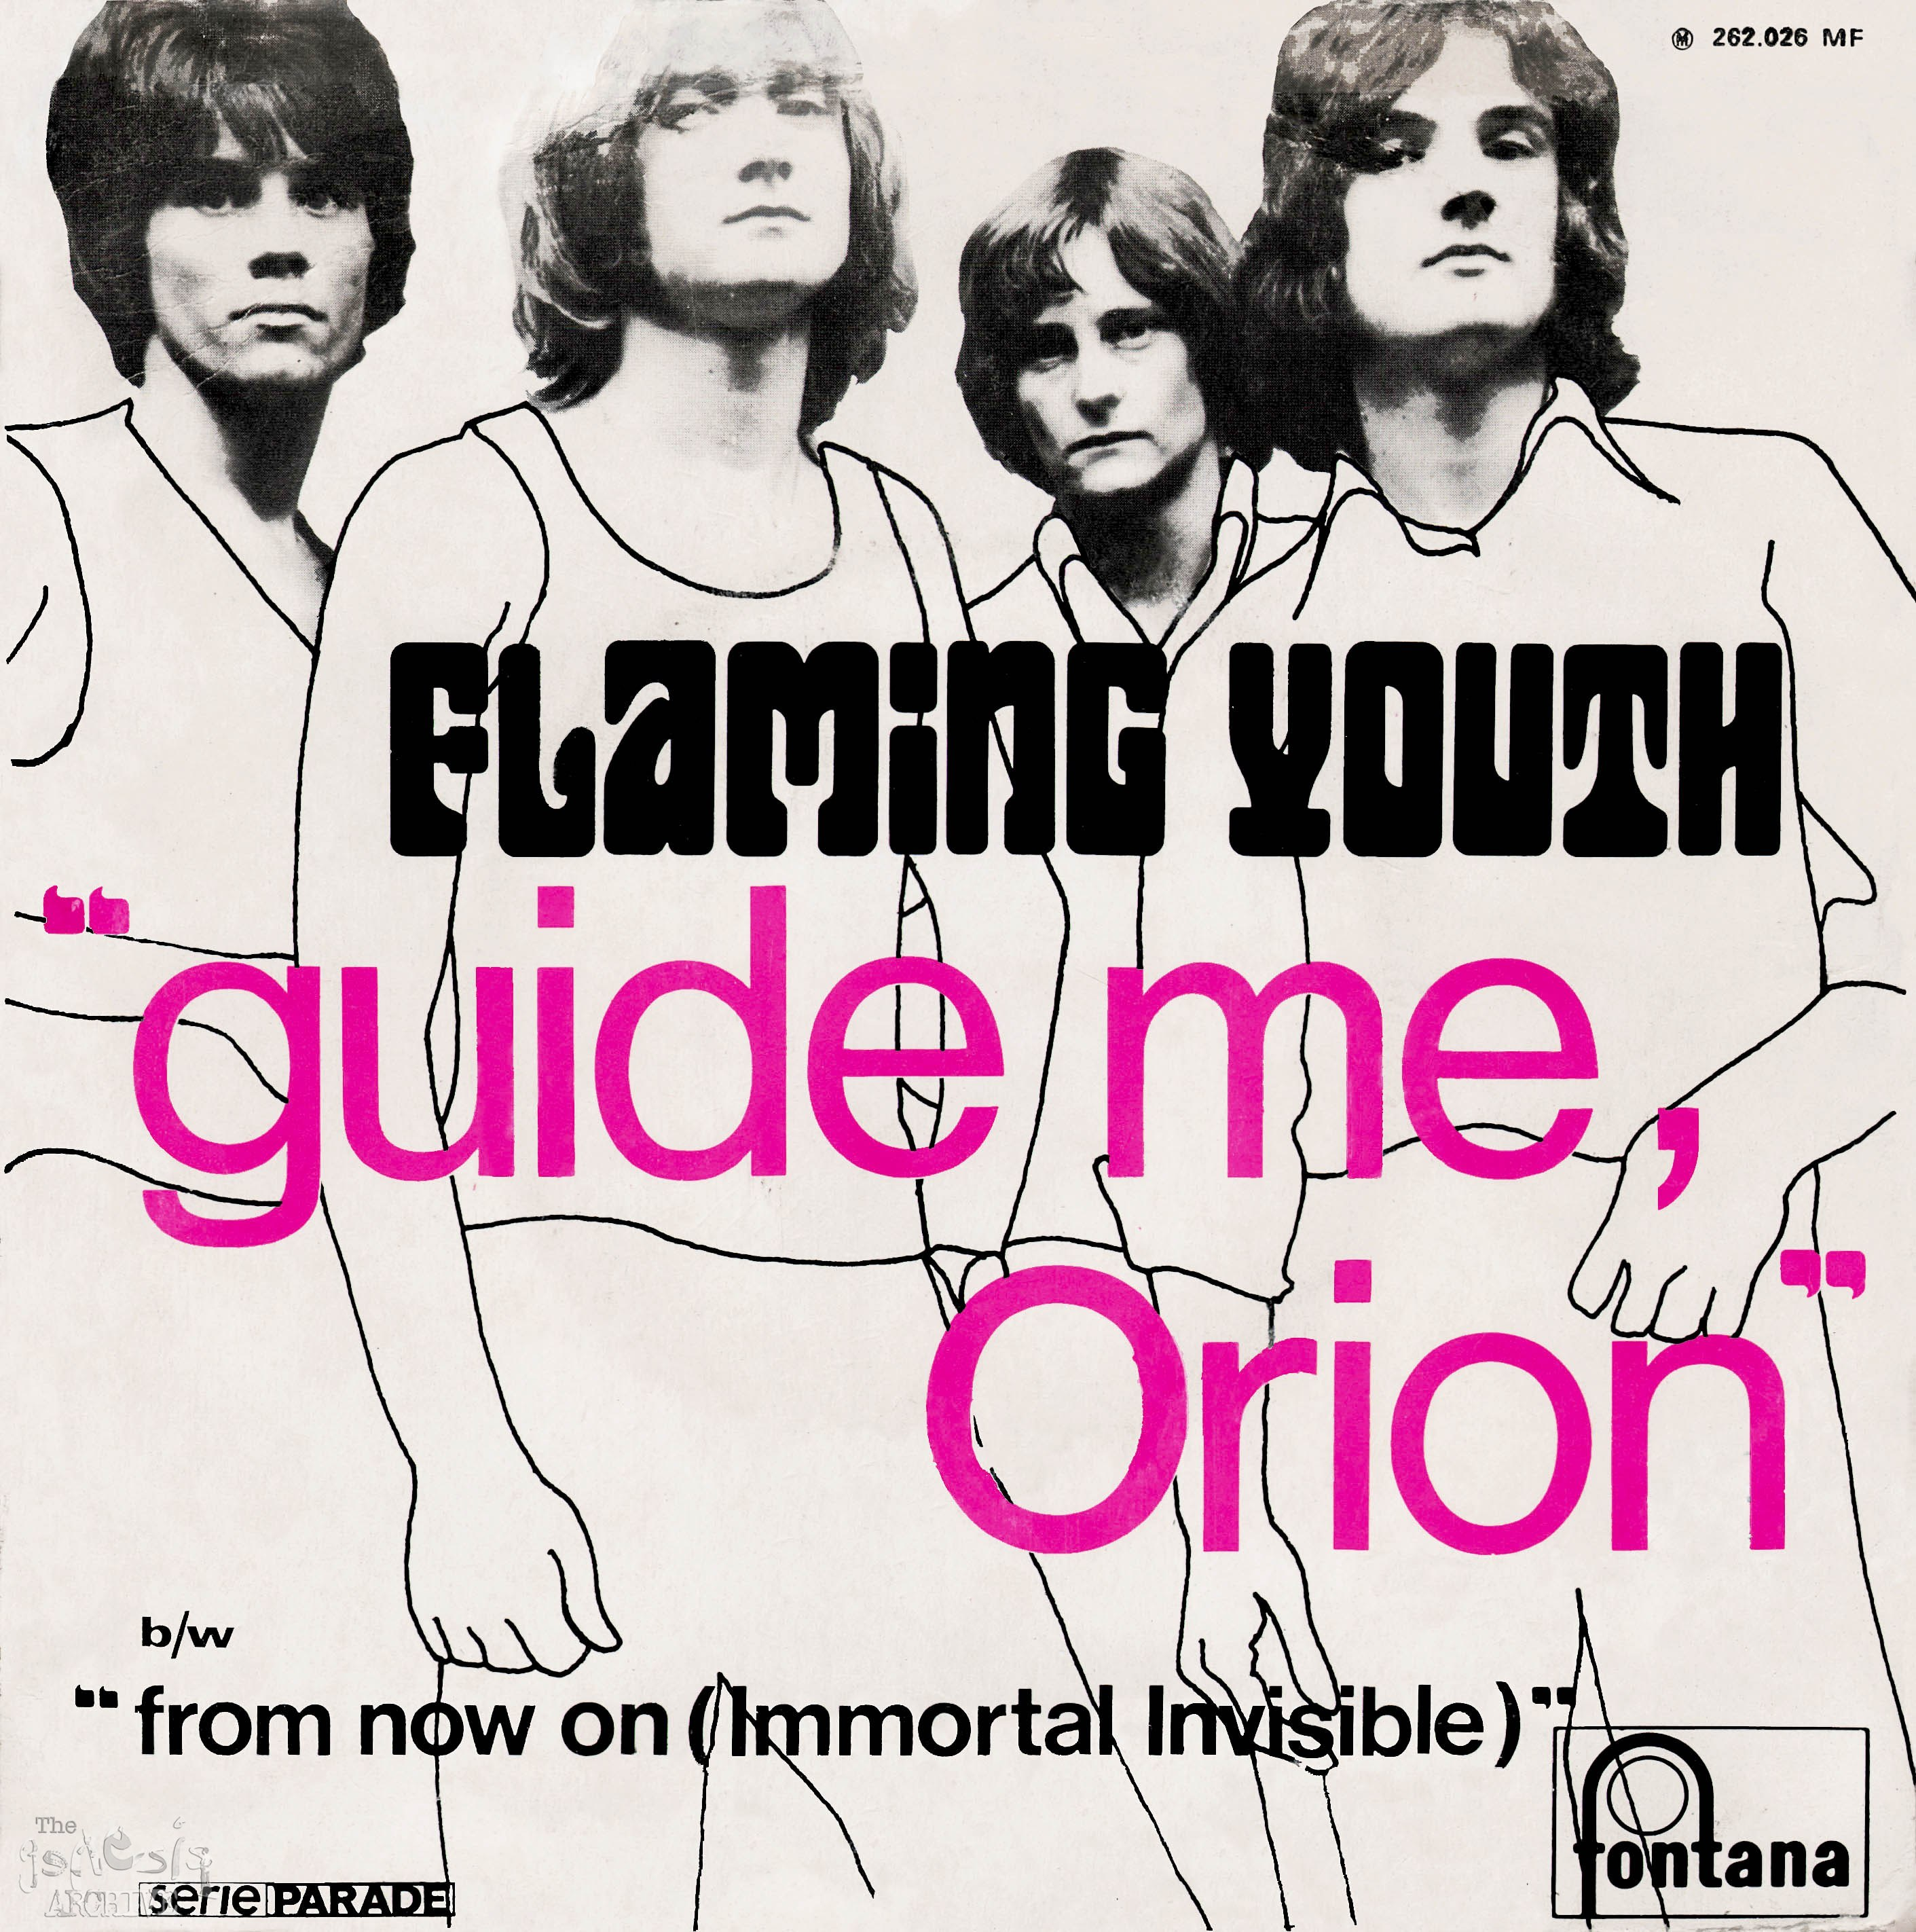 Flaming Youth Guide Me Orion